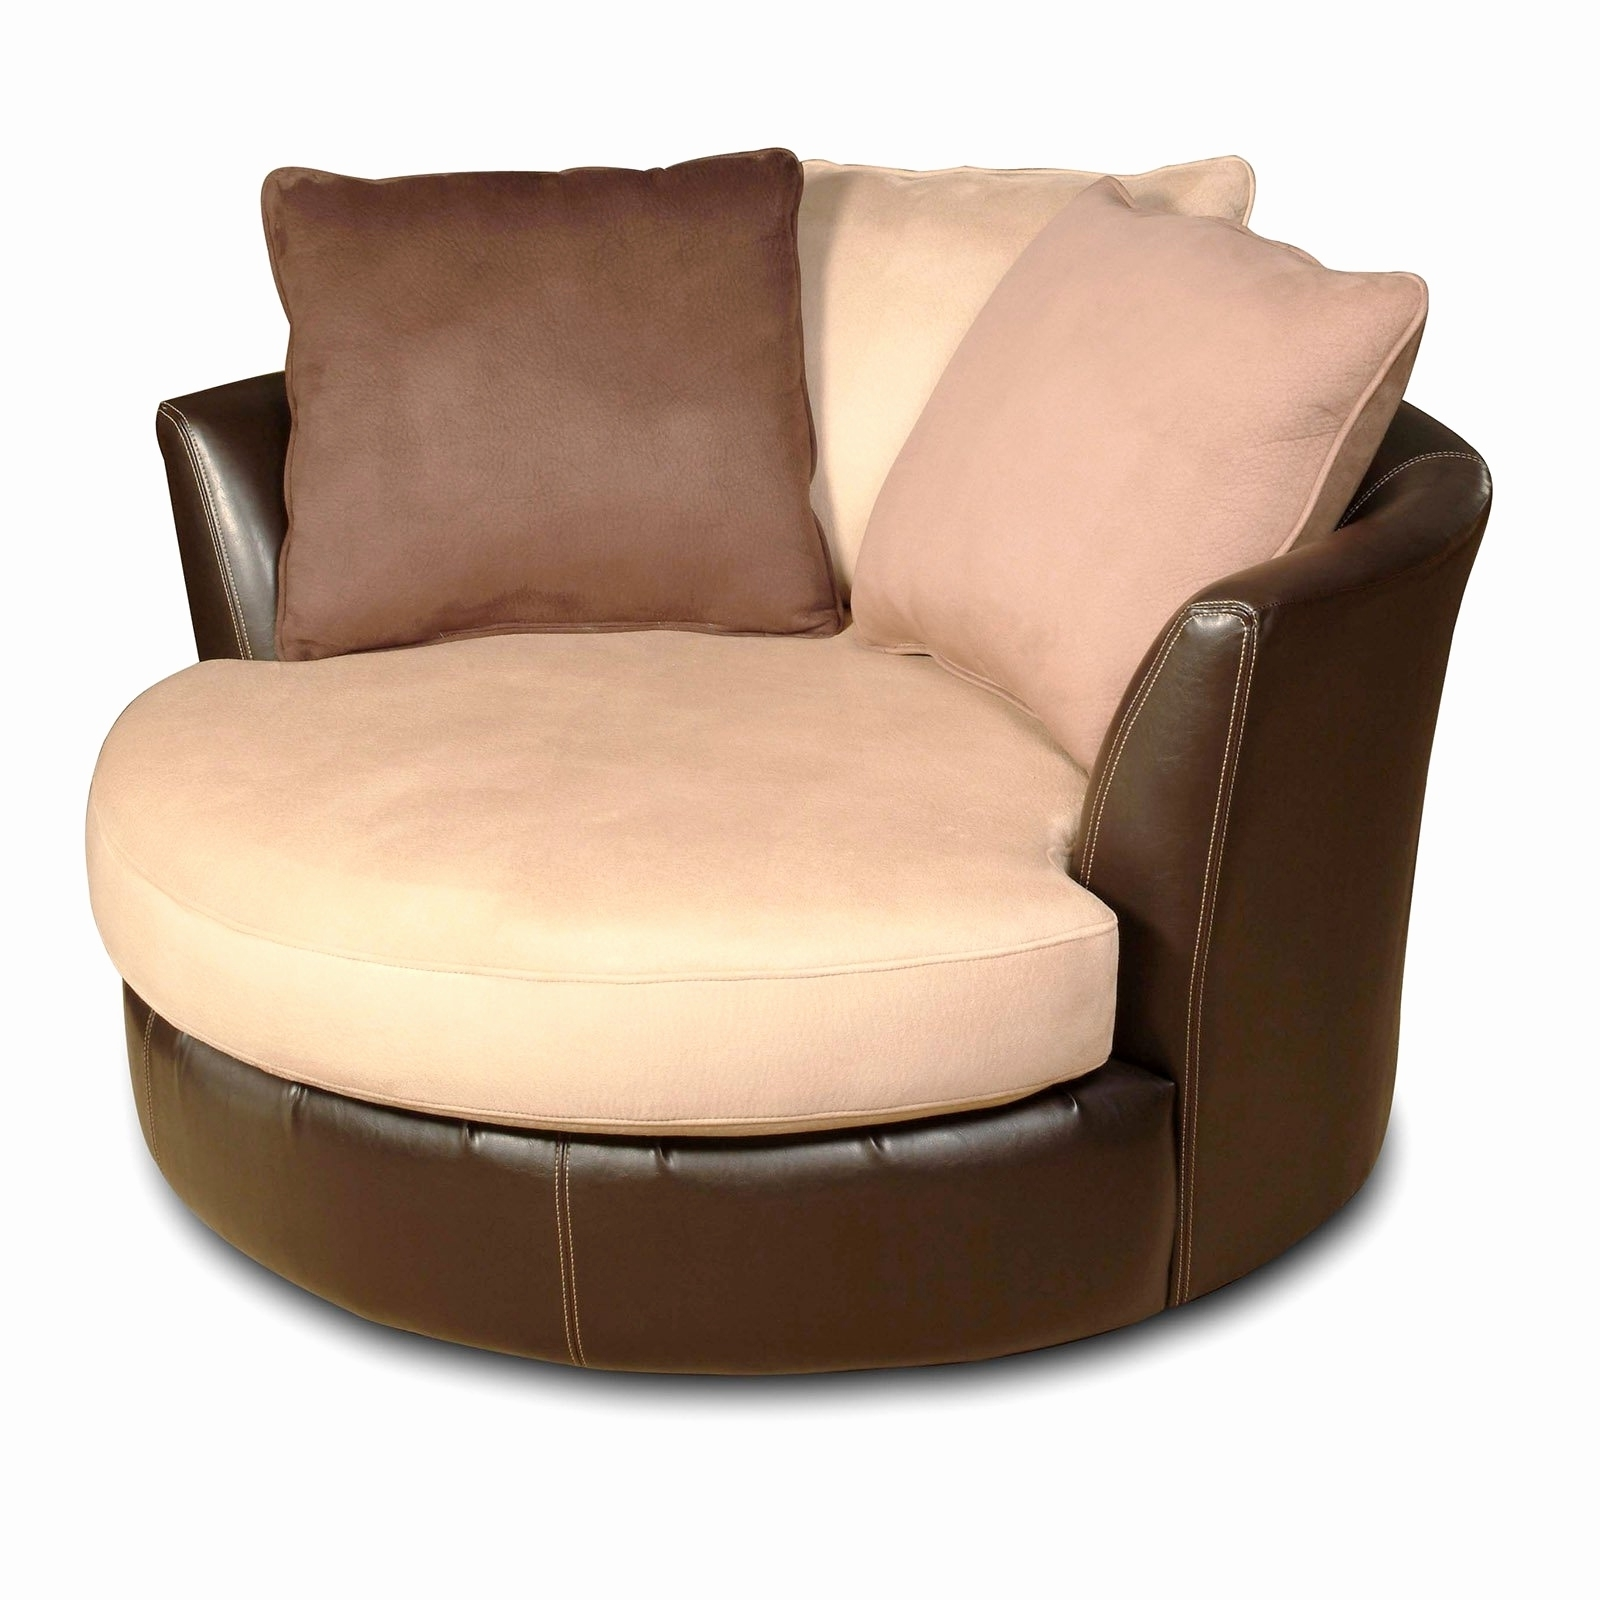 Most Popular Lovely Round Sofa Chair 2018 – Couches Ideas Inside Big Round Sofa Chairs (View 13 of 20)